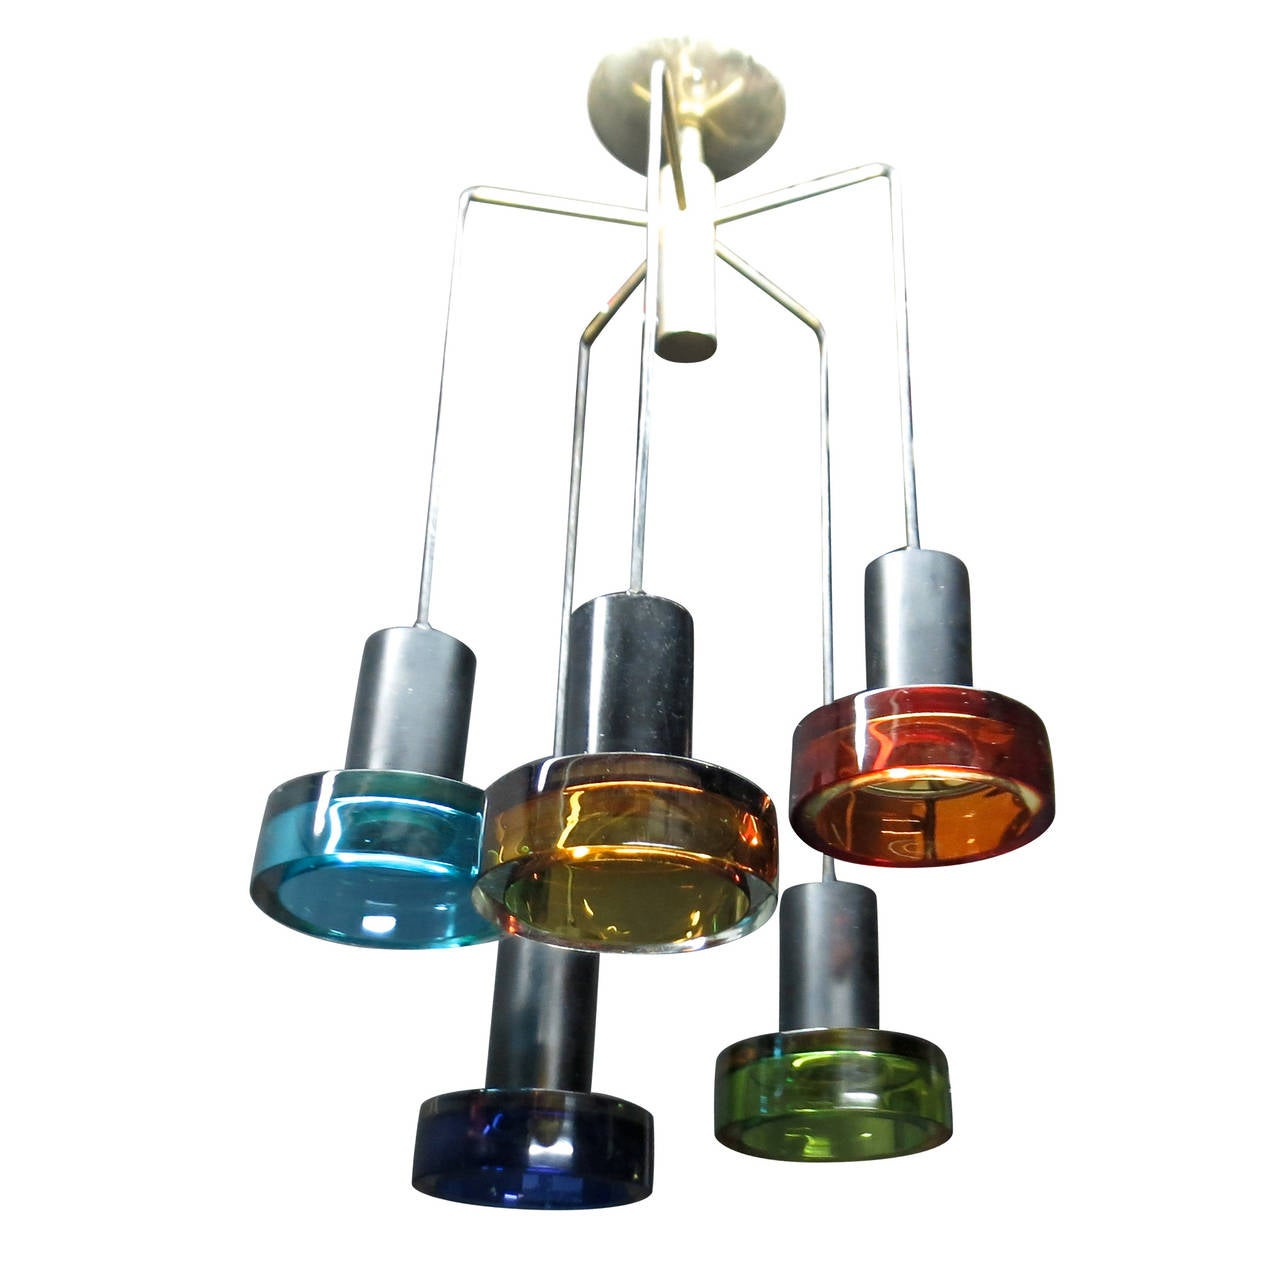 Colored Glass Ceiling Fixture by Flavio Poli for Seguso, Italy Circa 1950